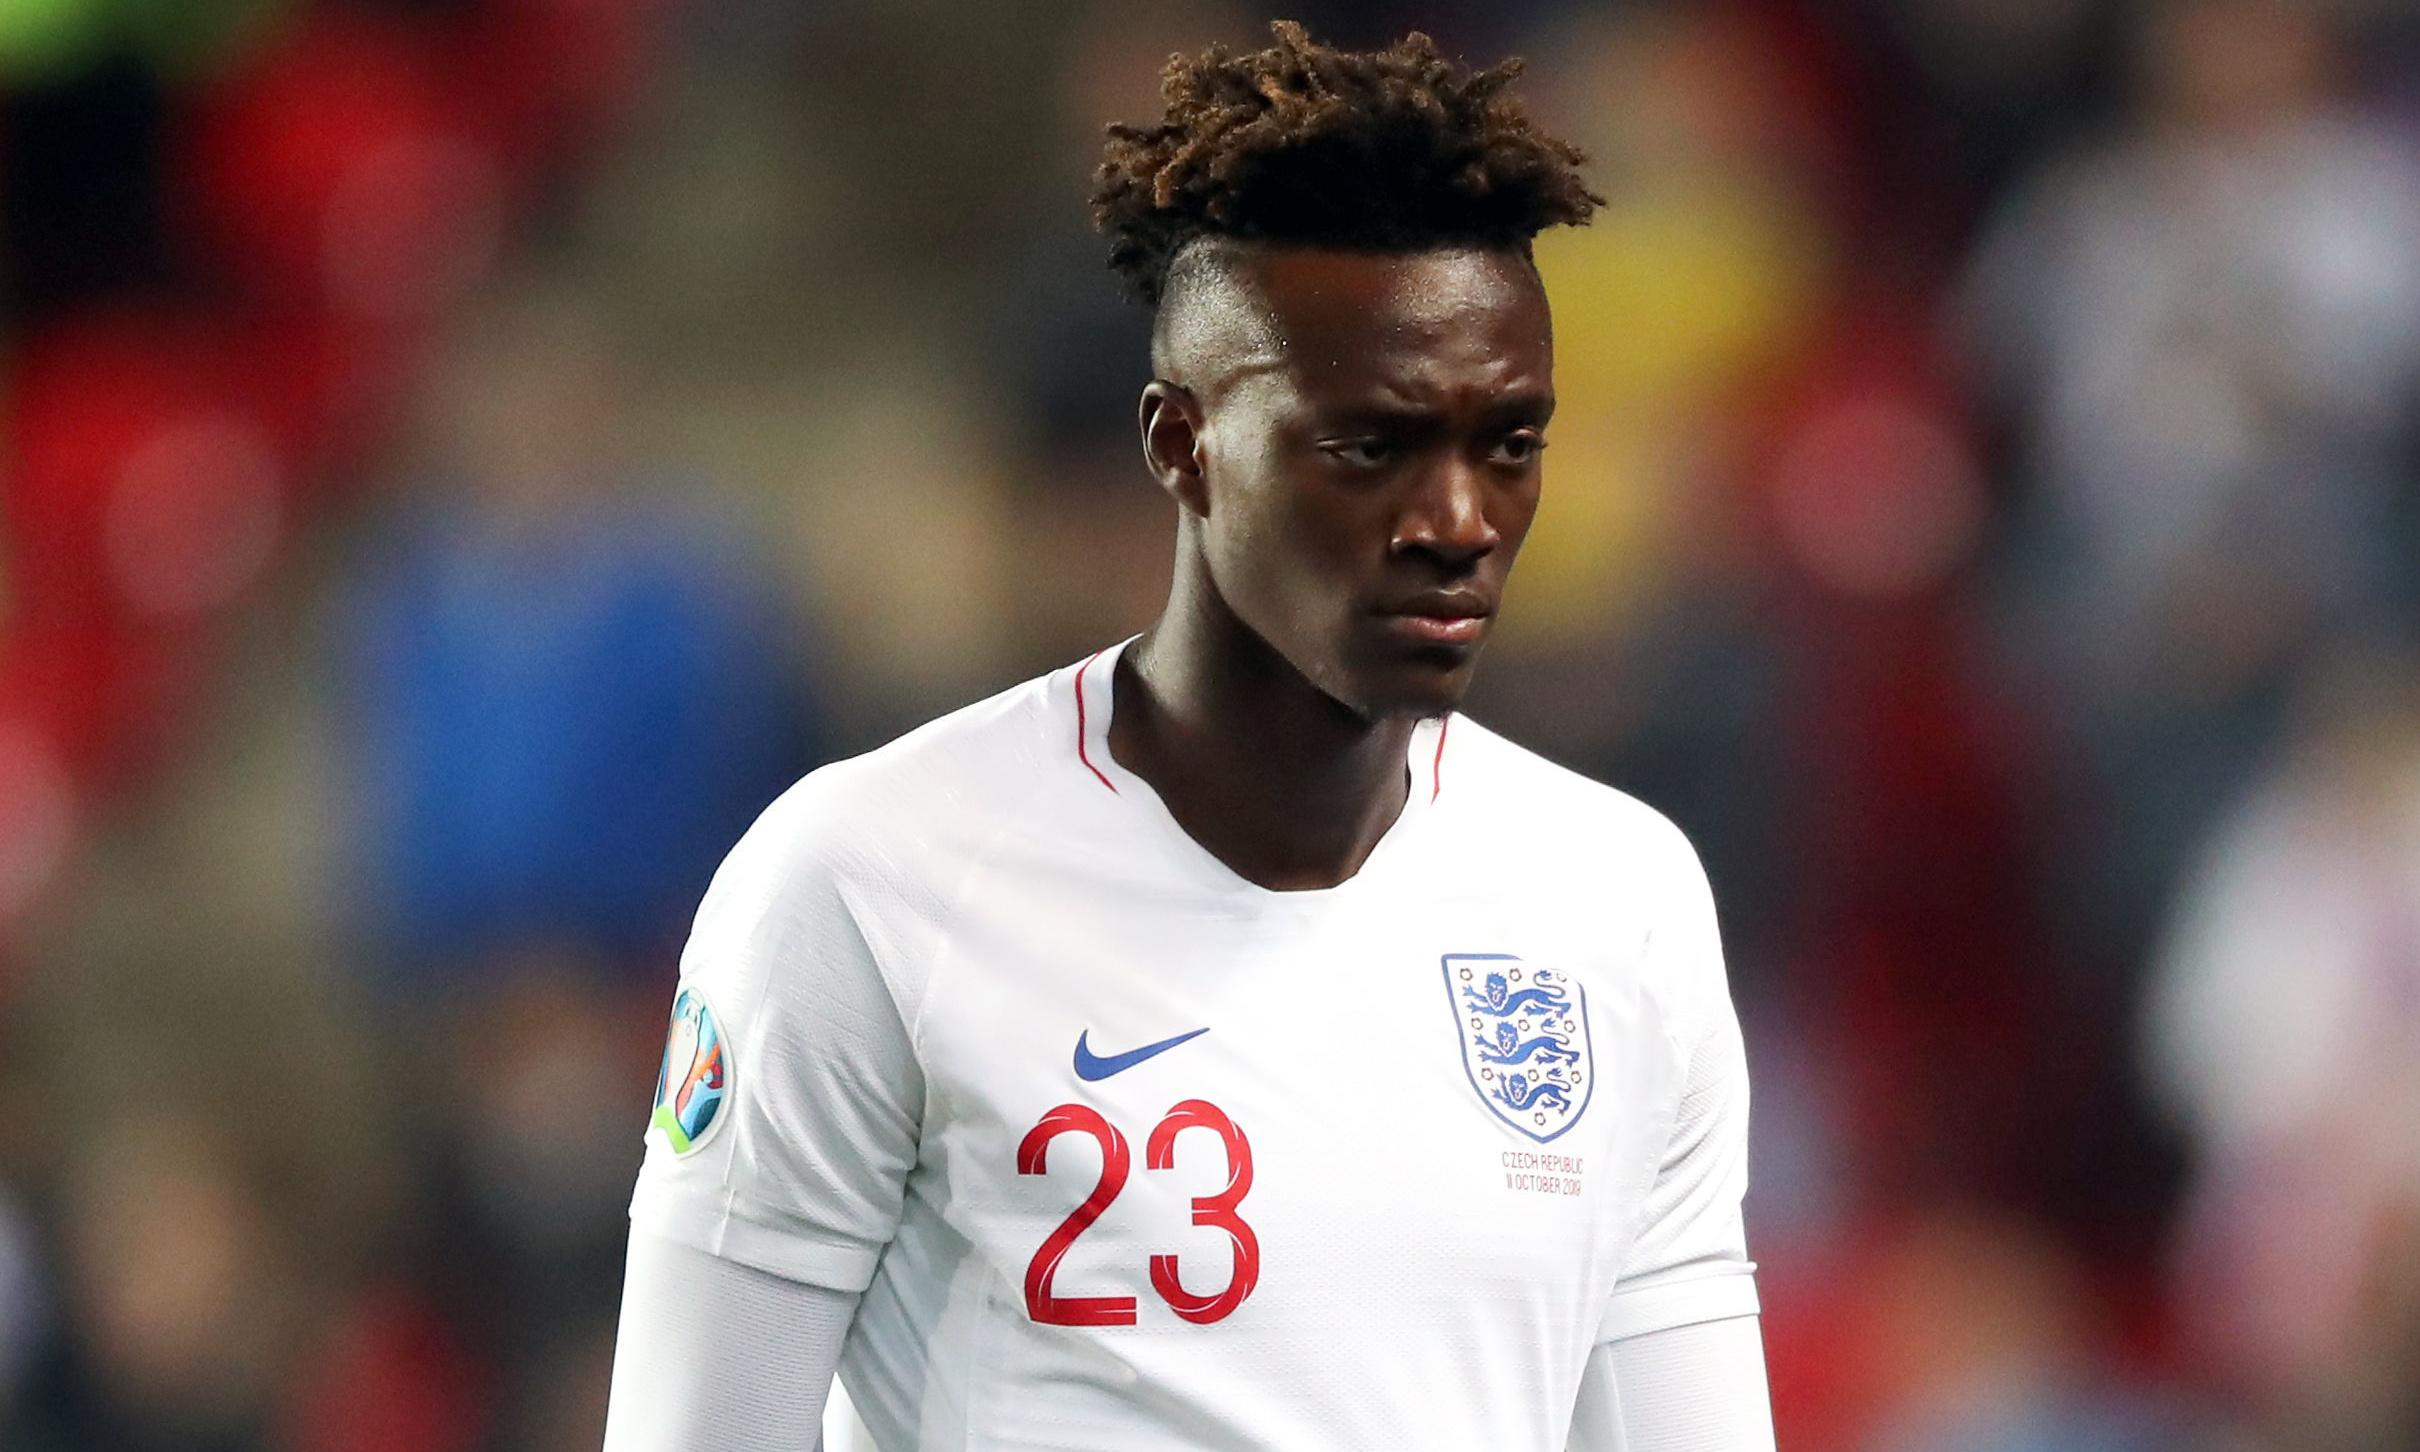 If England walk off the pitch because of abuse, racism wins